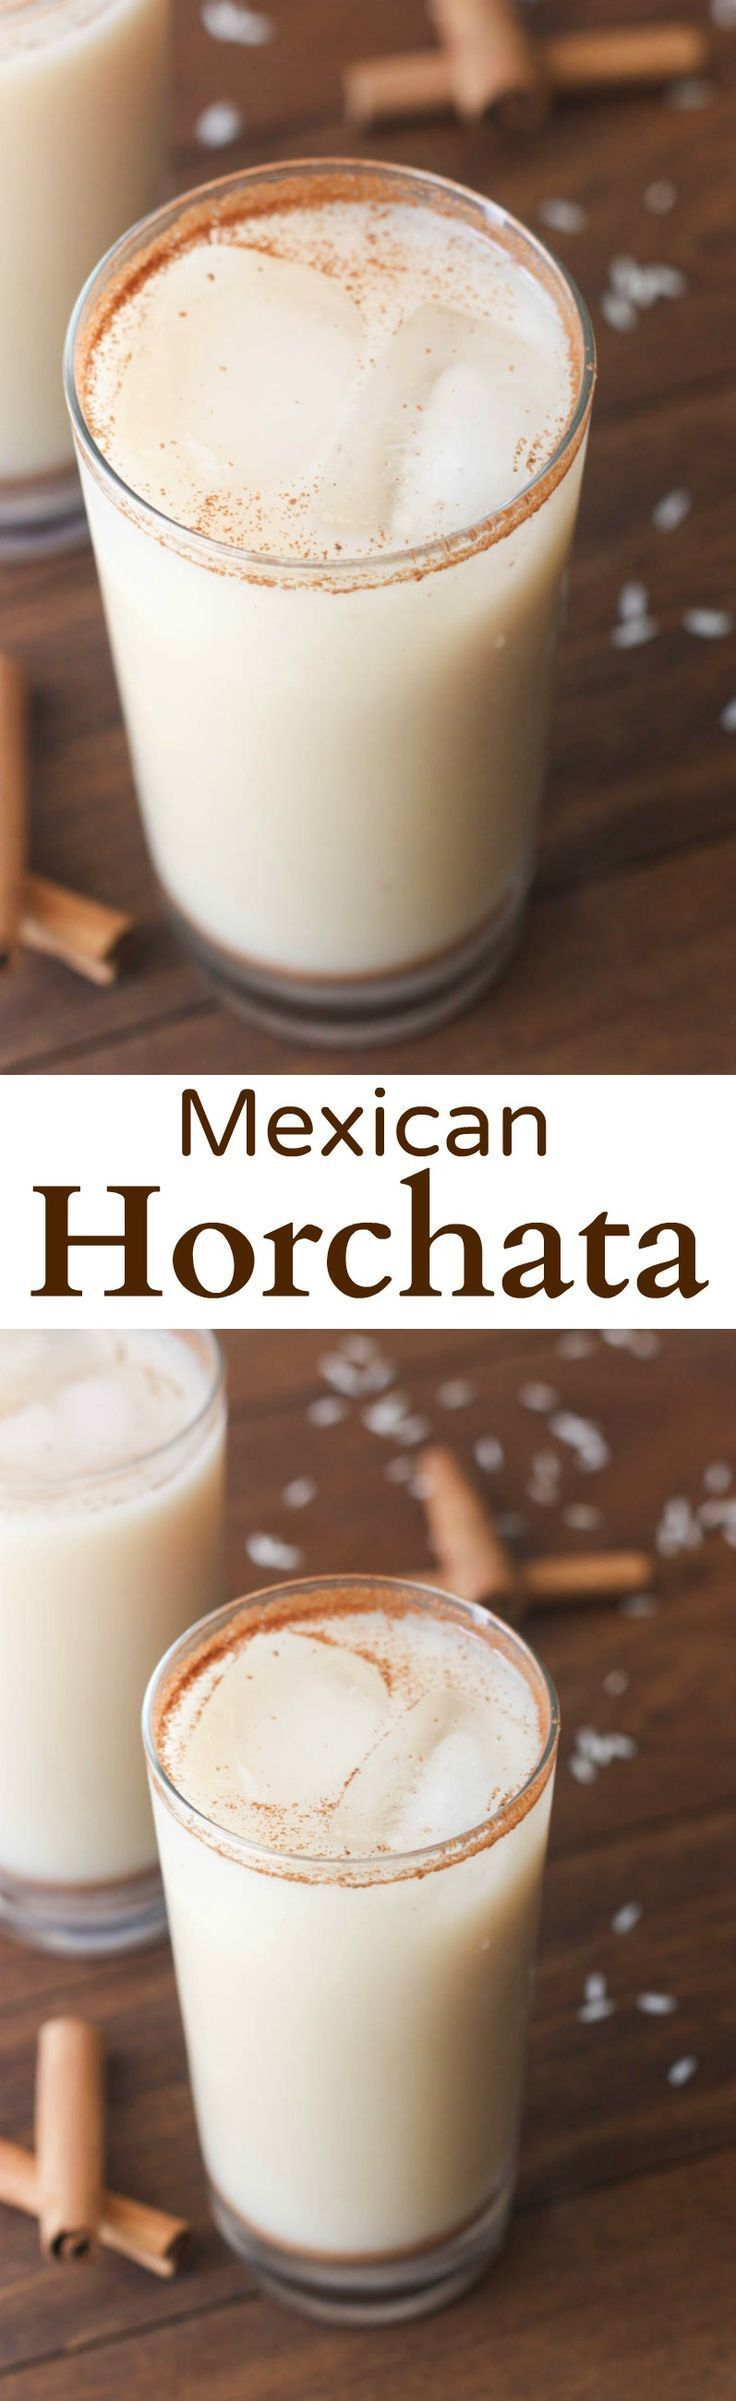 #cantinastyle #particularly #judgingread #authentic #horchata #slightly #homemade #favorite #salsaive #easiest #friends #mexican #several #awesome #excuseHorchata The easiest, creamy and slightly sweet homemade Authentic Mexican Horchata.  It's almost Cinco de Mayo guys!  A good excuse to throw a party with your friends and make some awesome homemade Mexican food! I'll be making several of my favorite Mexican dishes, particularly Authentic Mexican Rice and Cantina-Style Salsa.I've found #authenticmexicansalsa